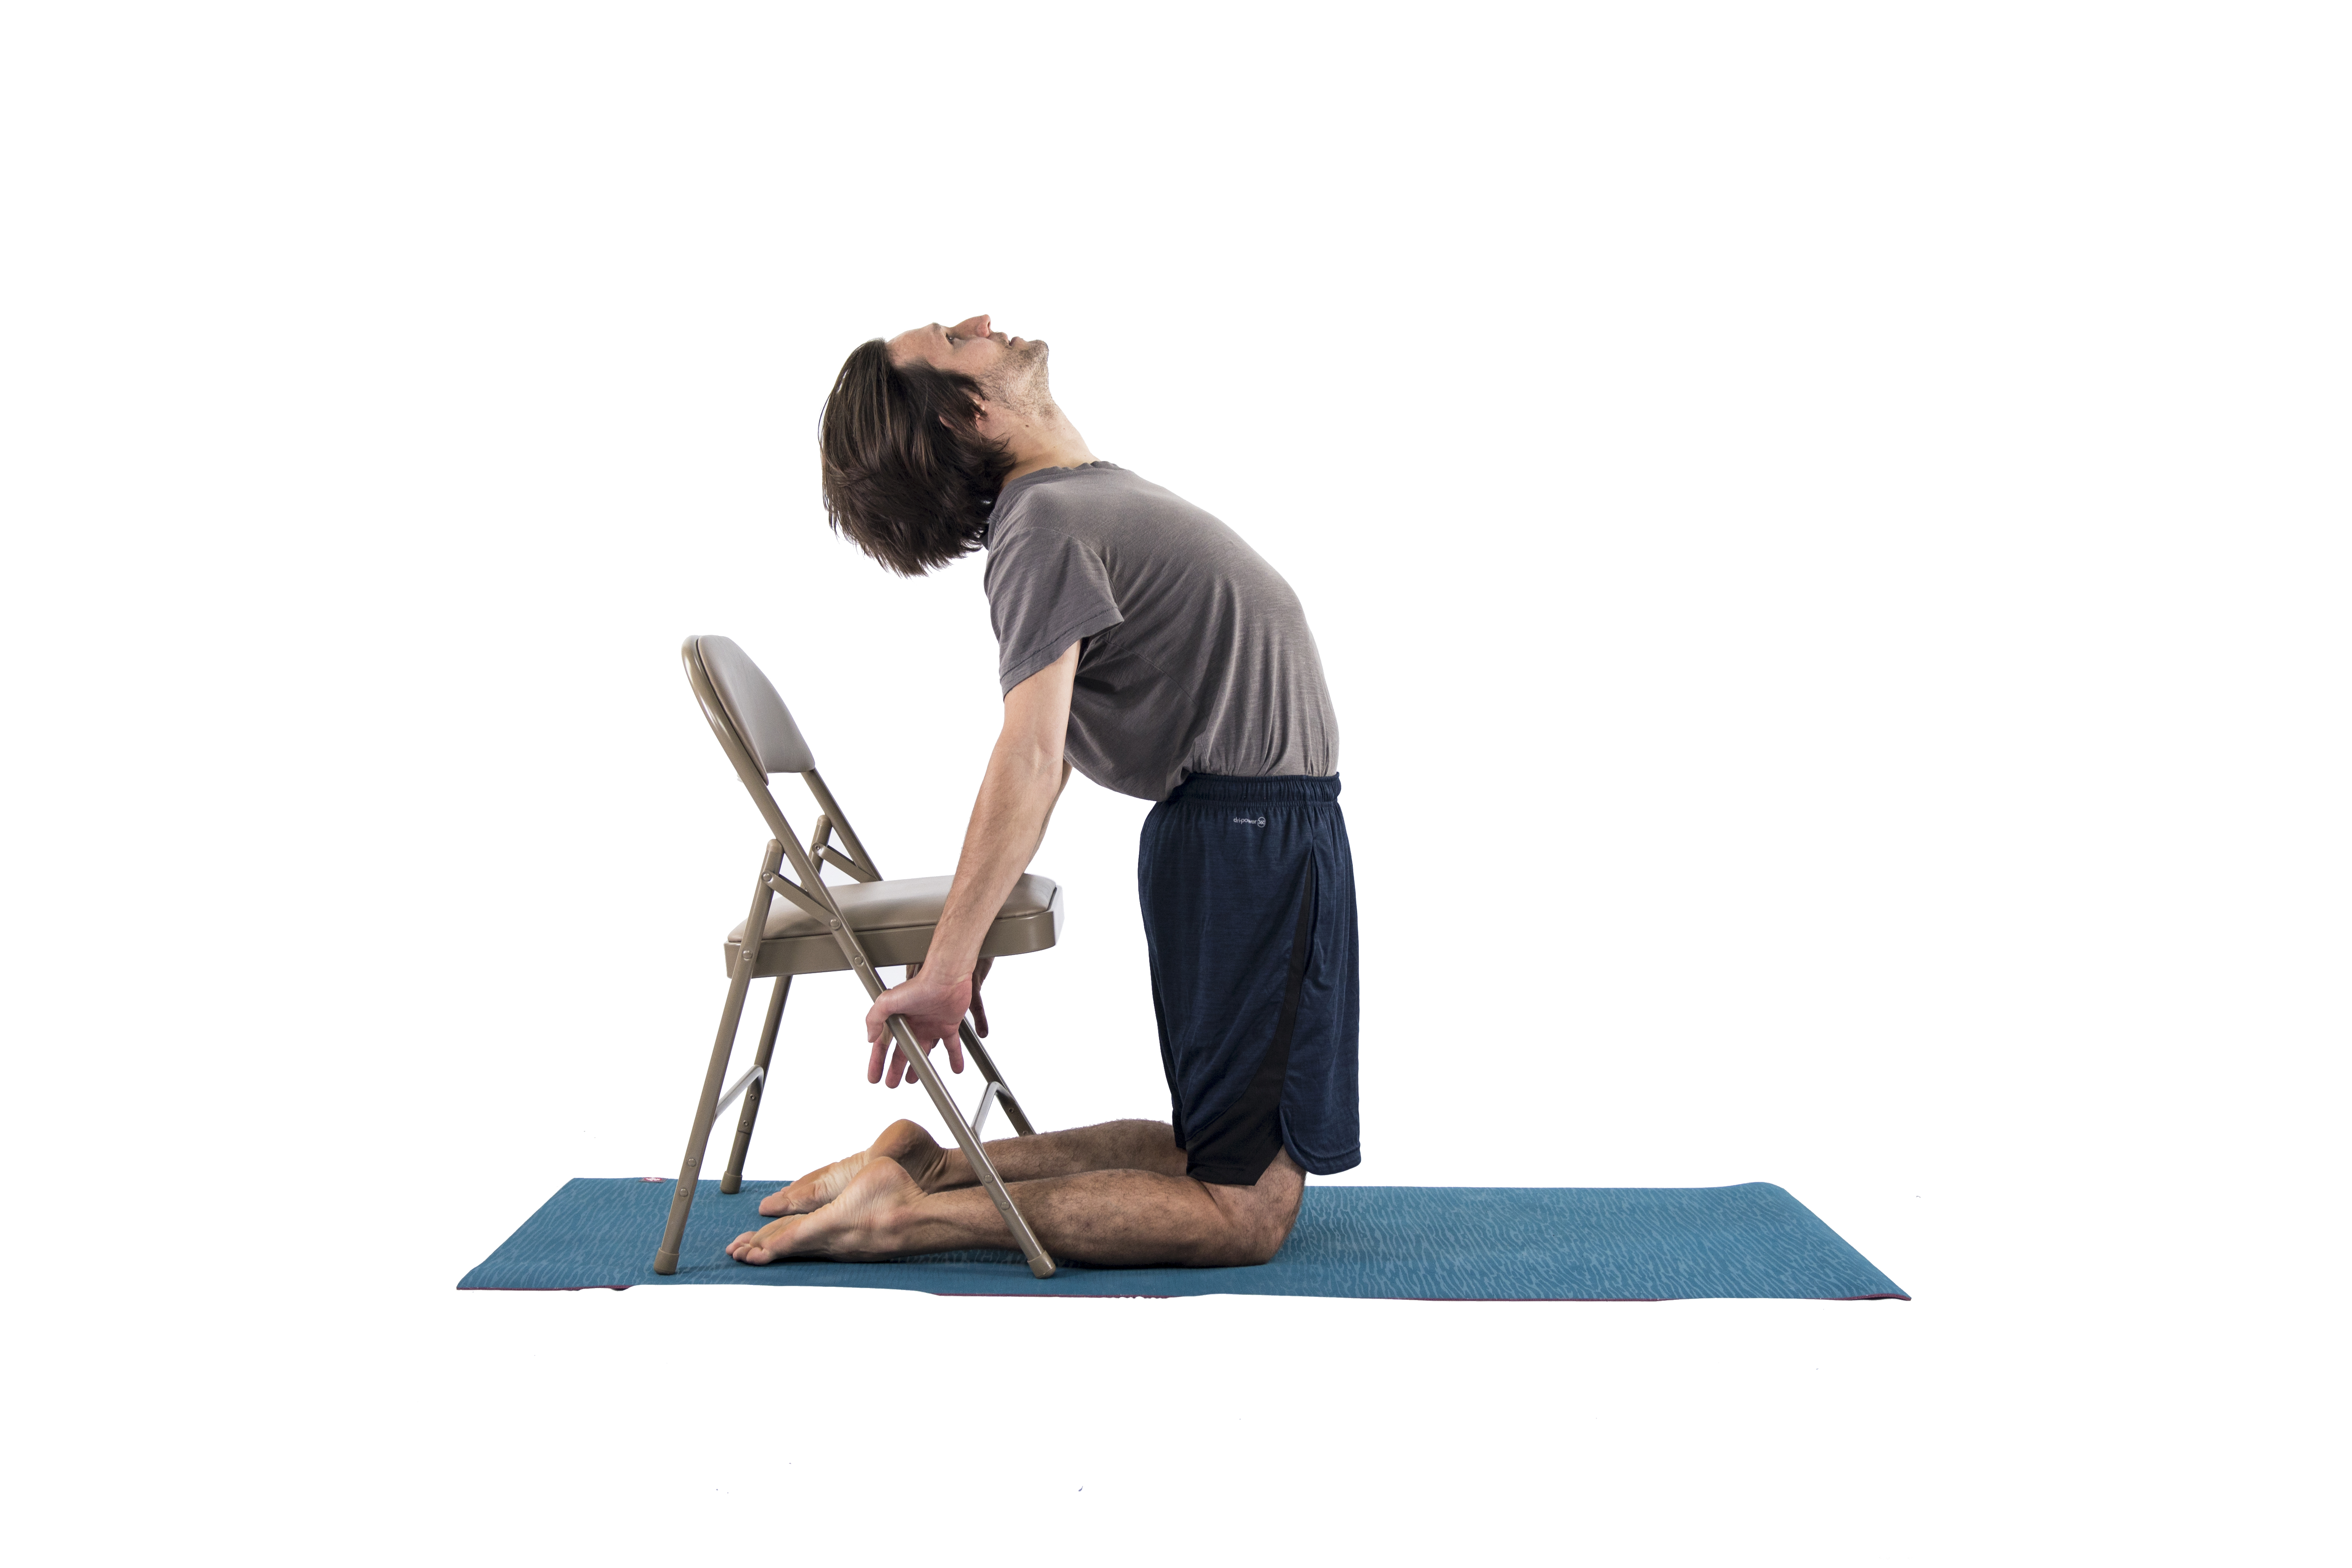 Man in Camel yoga Pose (Ustrasana) to open the chest and practice backbending in preparation for Dancer Pose